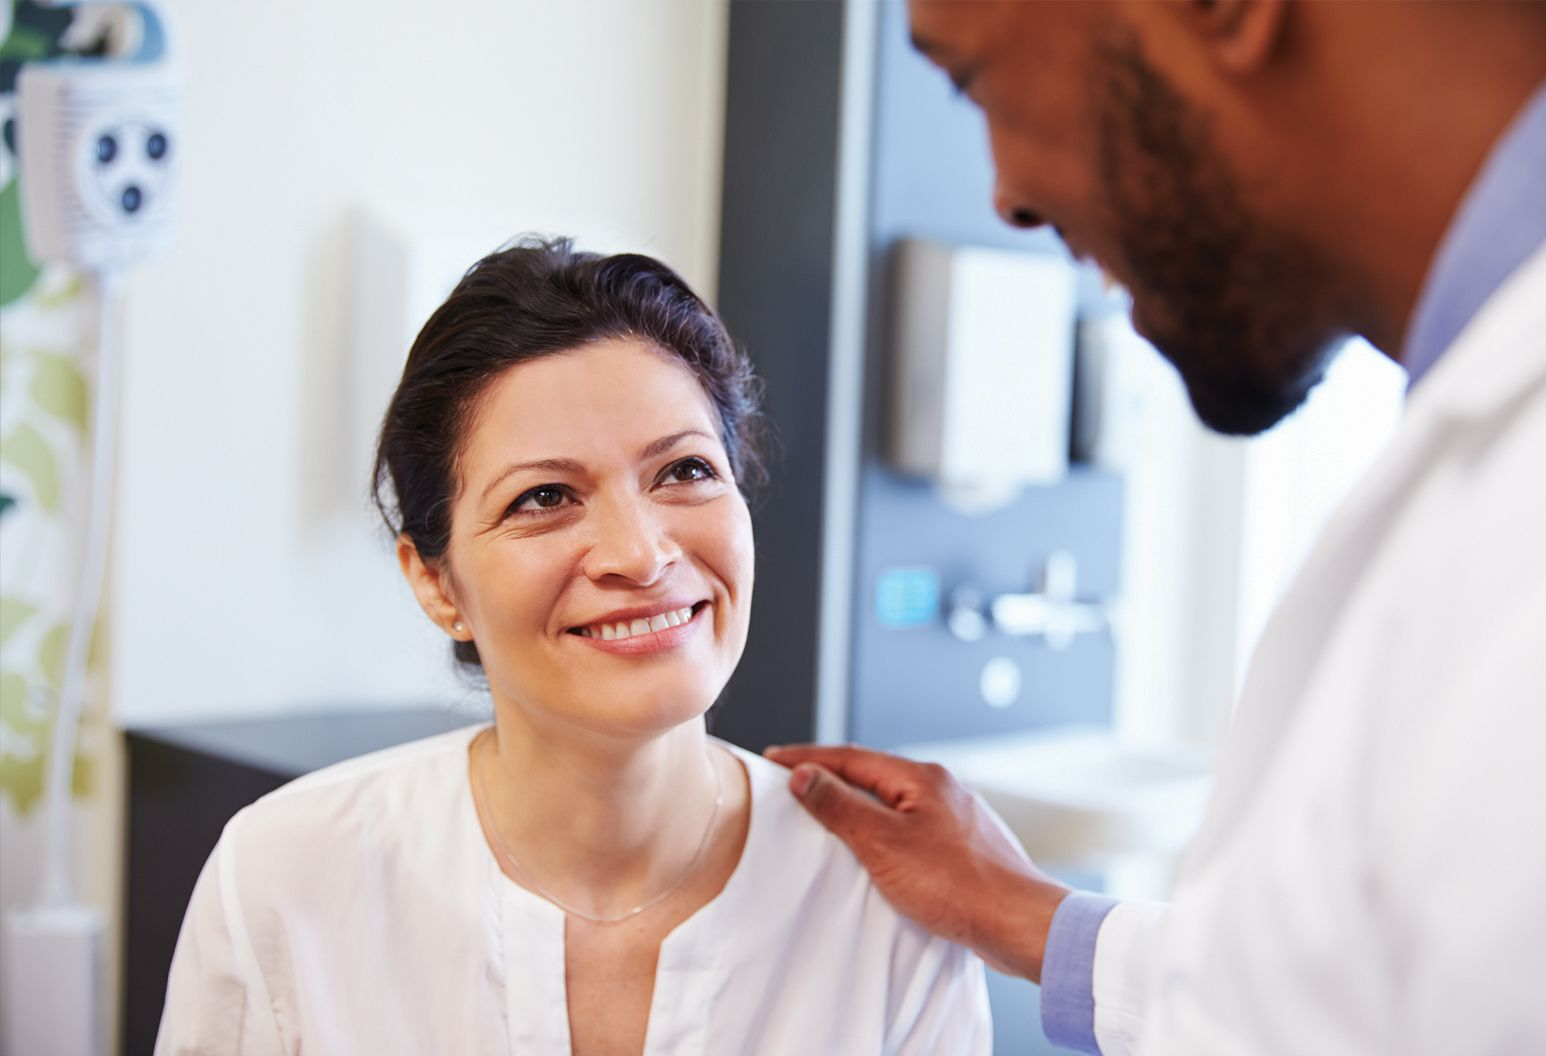 Middle aged woman with brown hair and white blouse smiles as doctor in white lab coat talks to her while gently touching her shoulder.